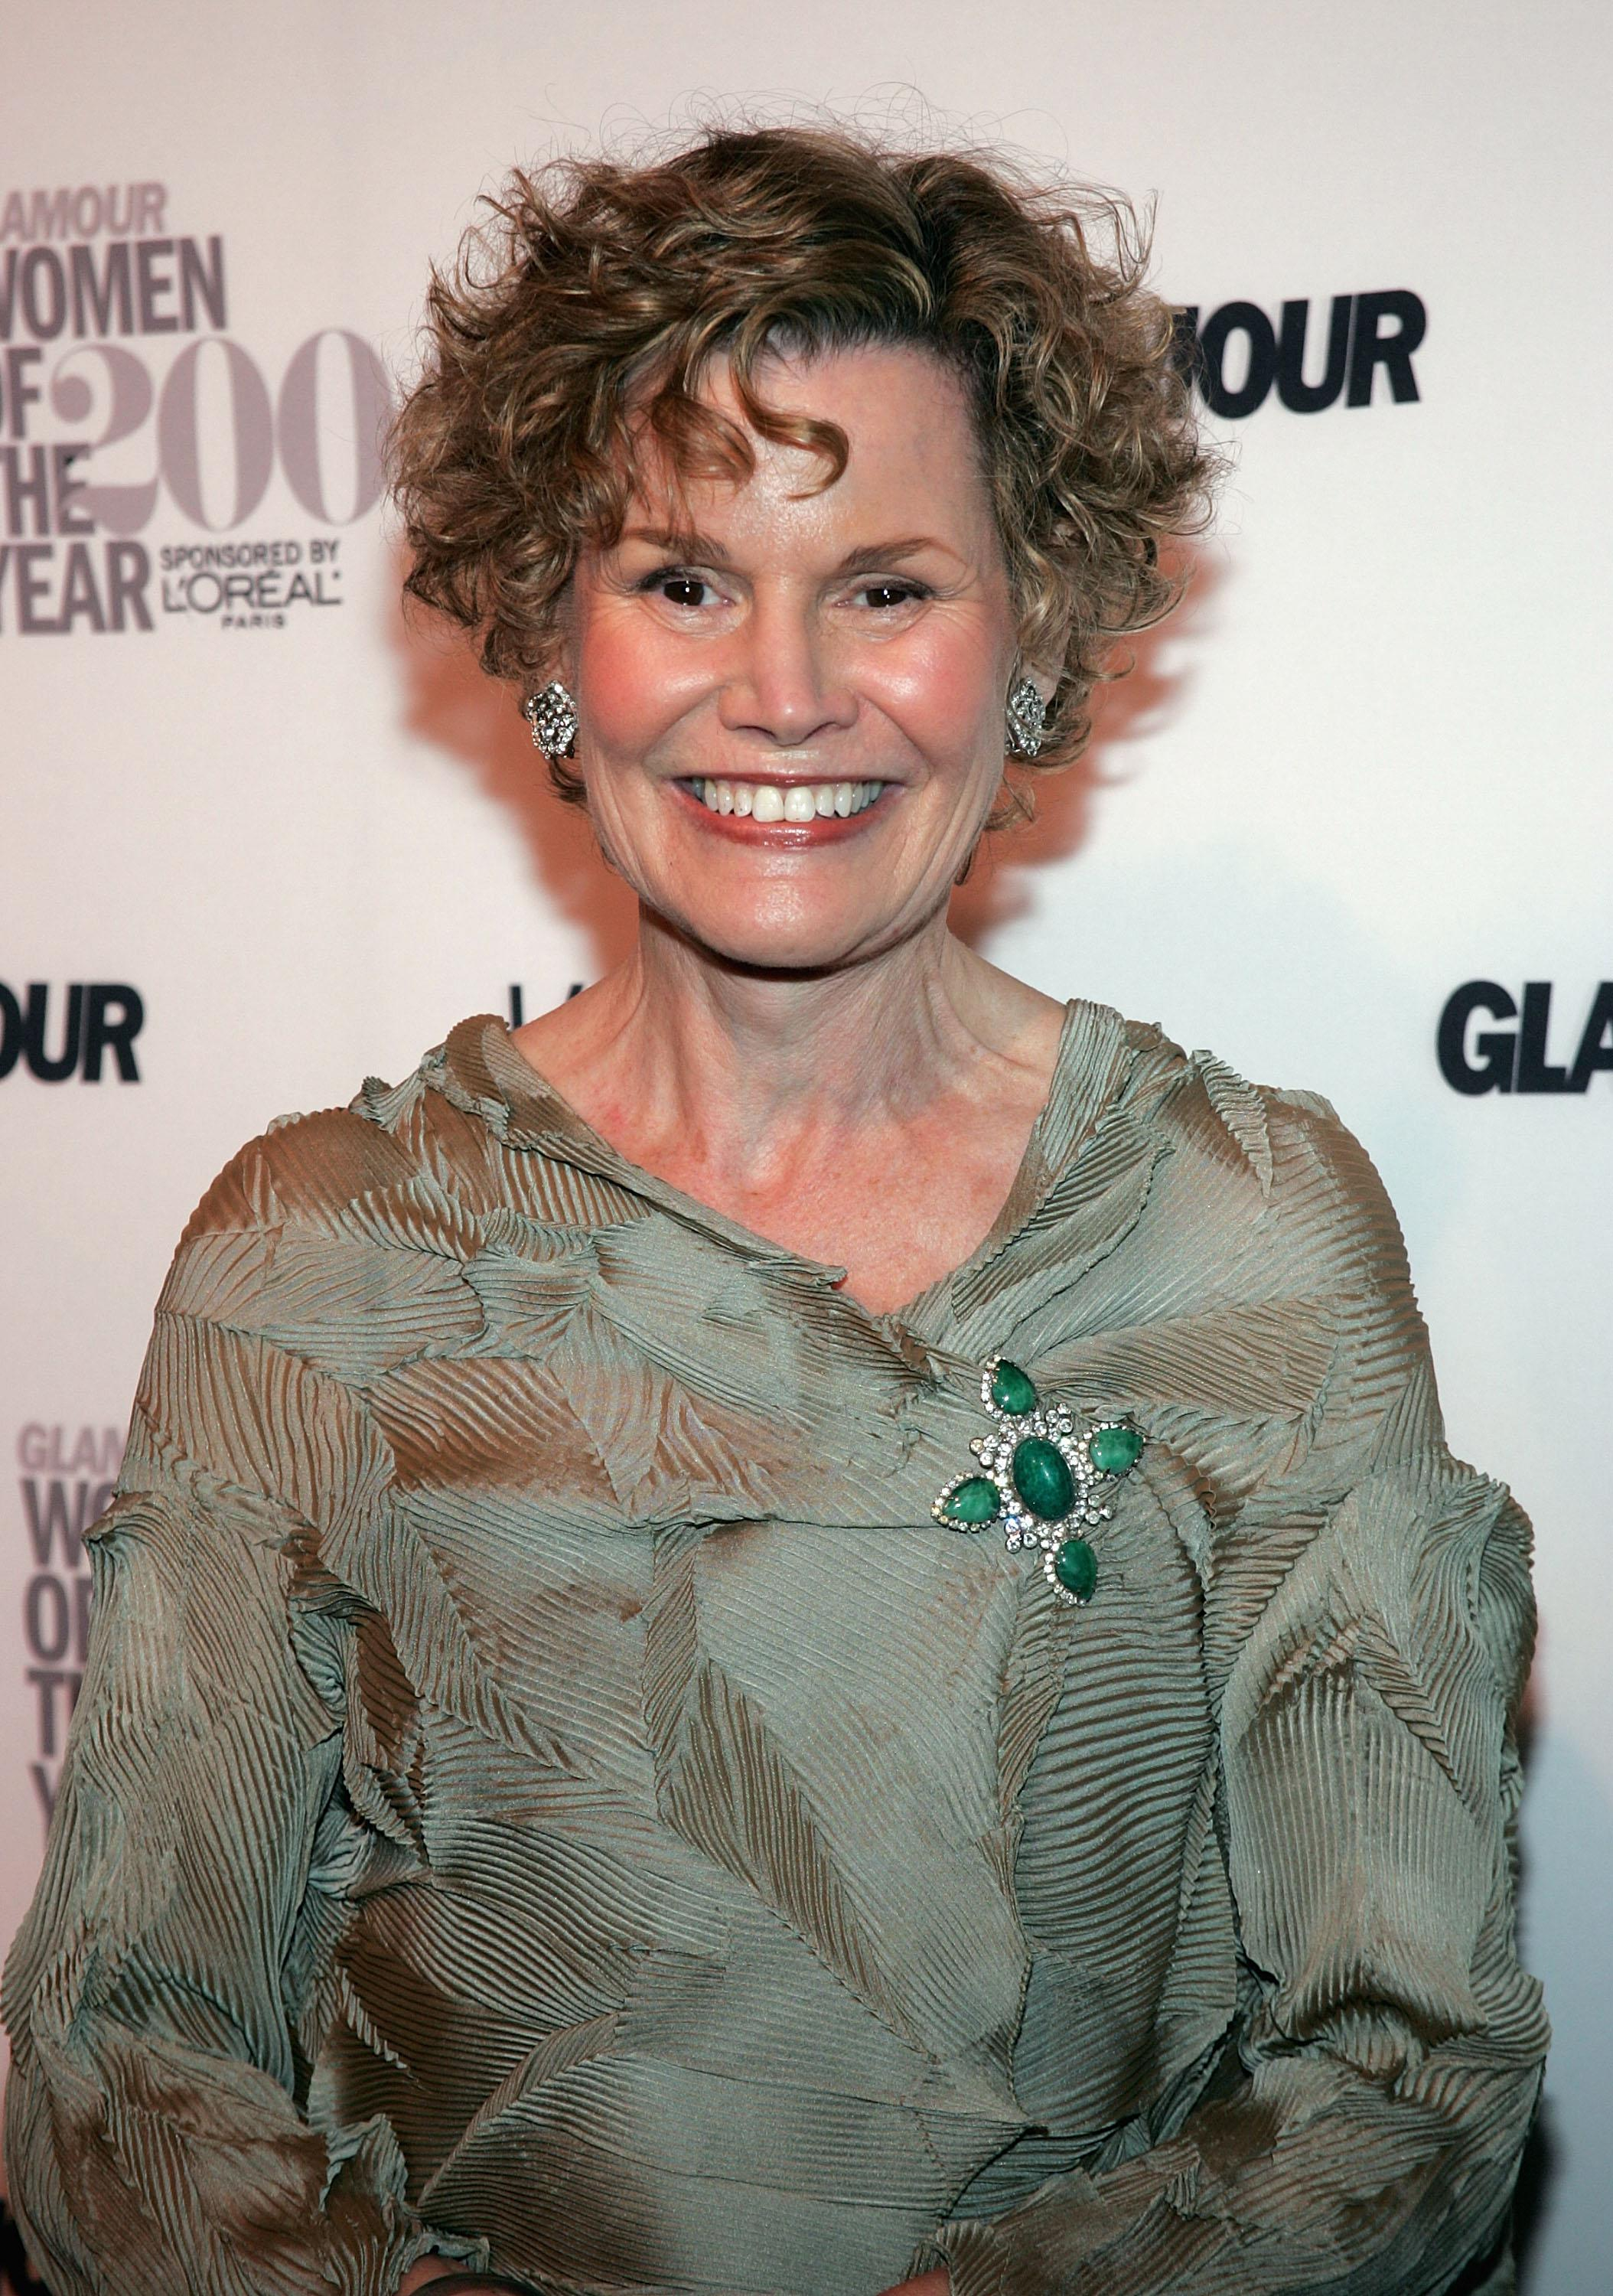 Judy Blume on a red carpet, smiling.